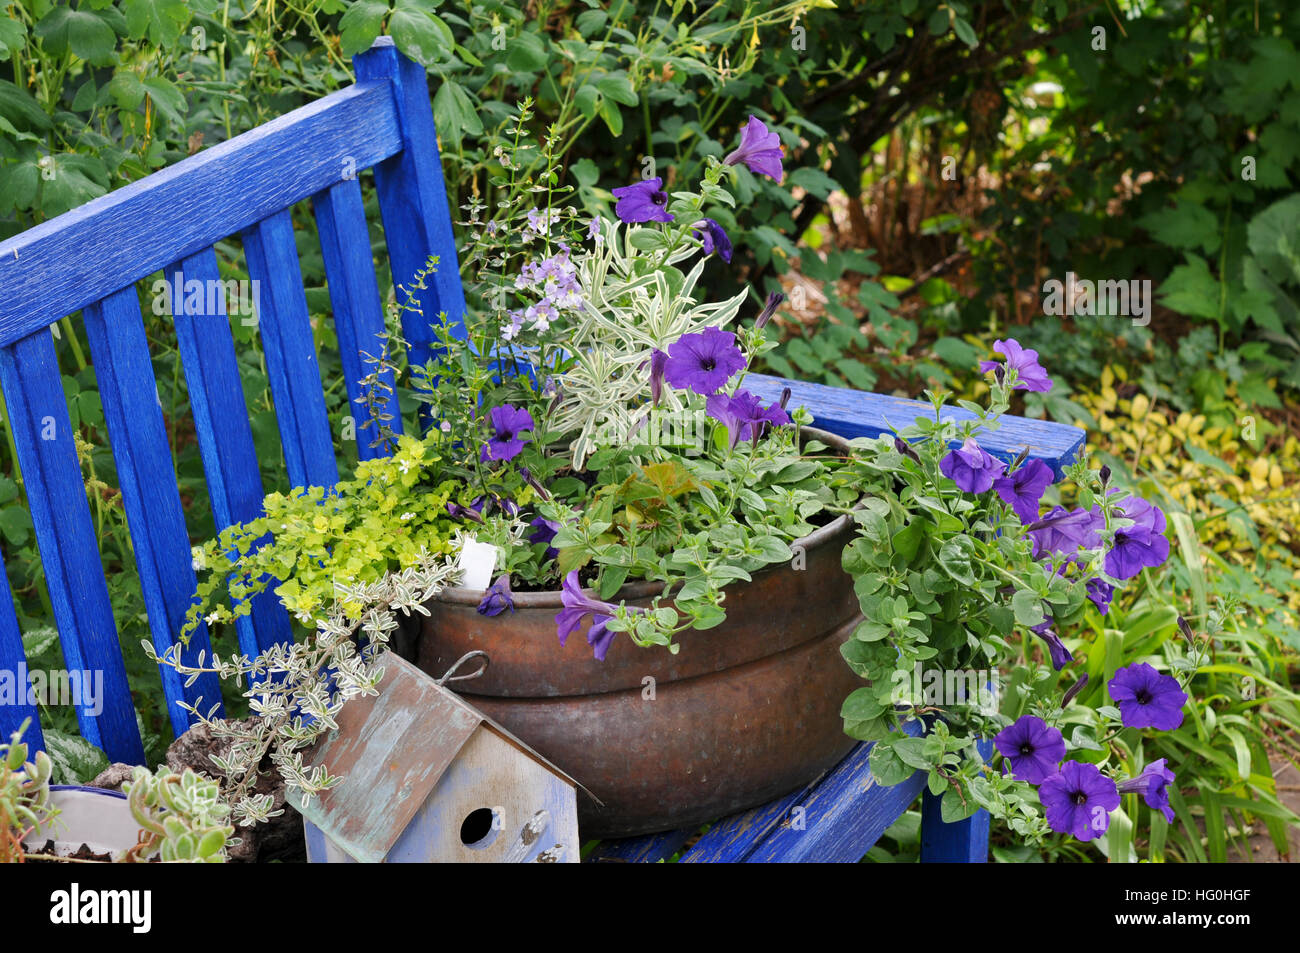 Blue garden bench with pot plants - Stock Image